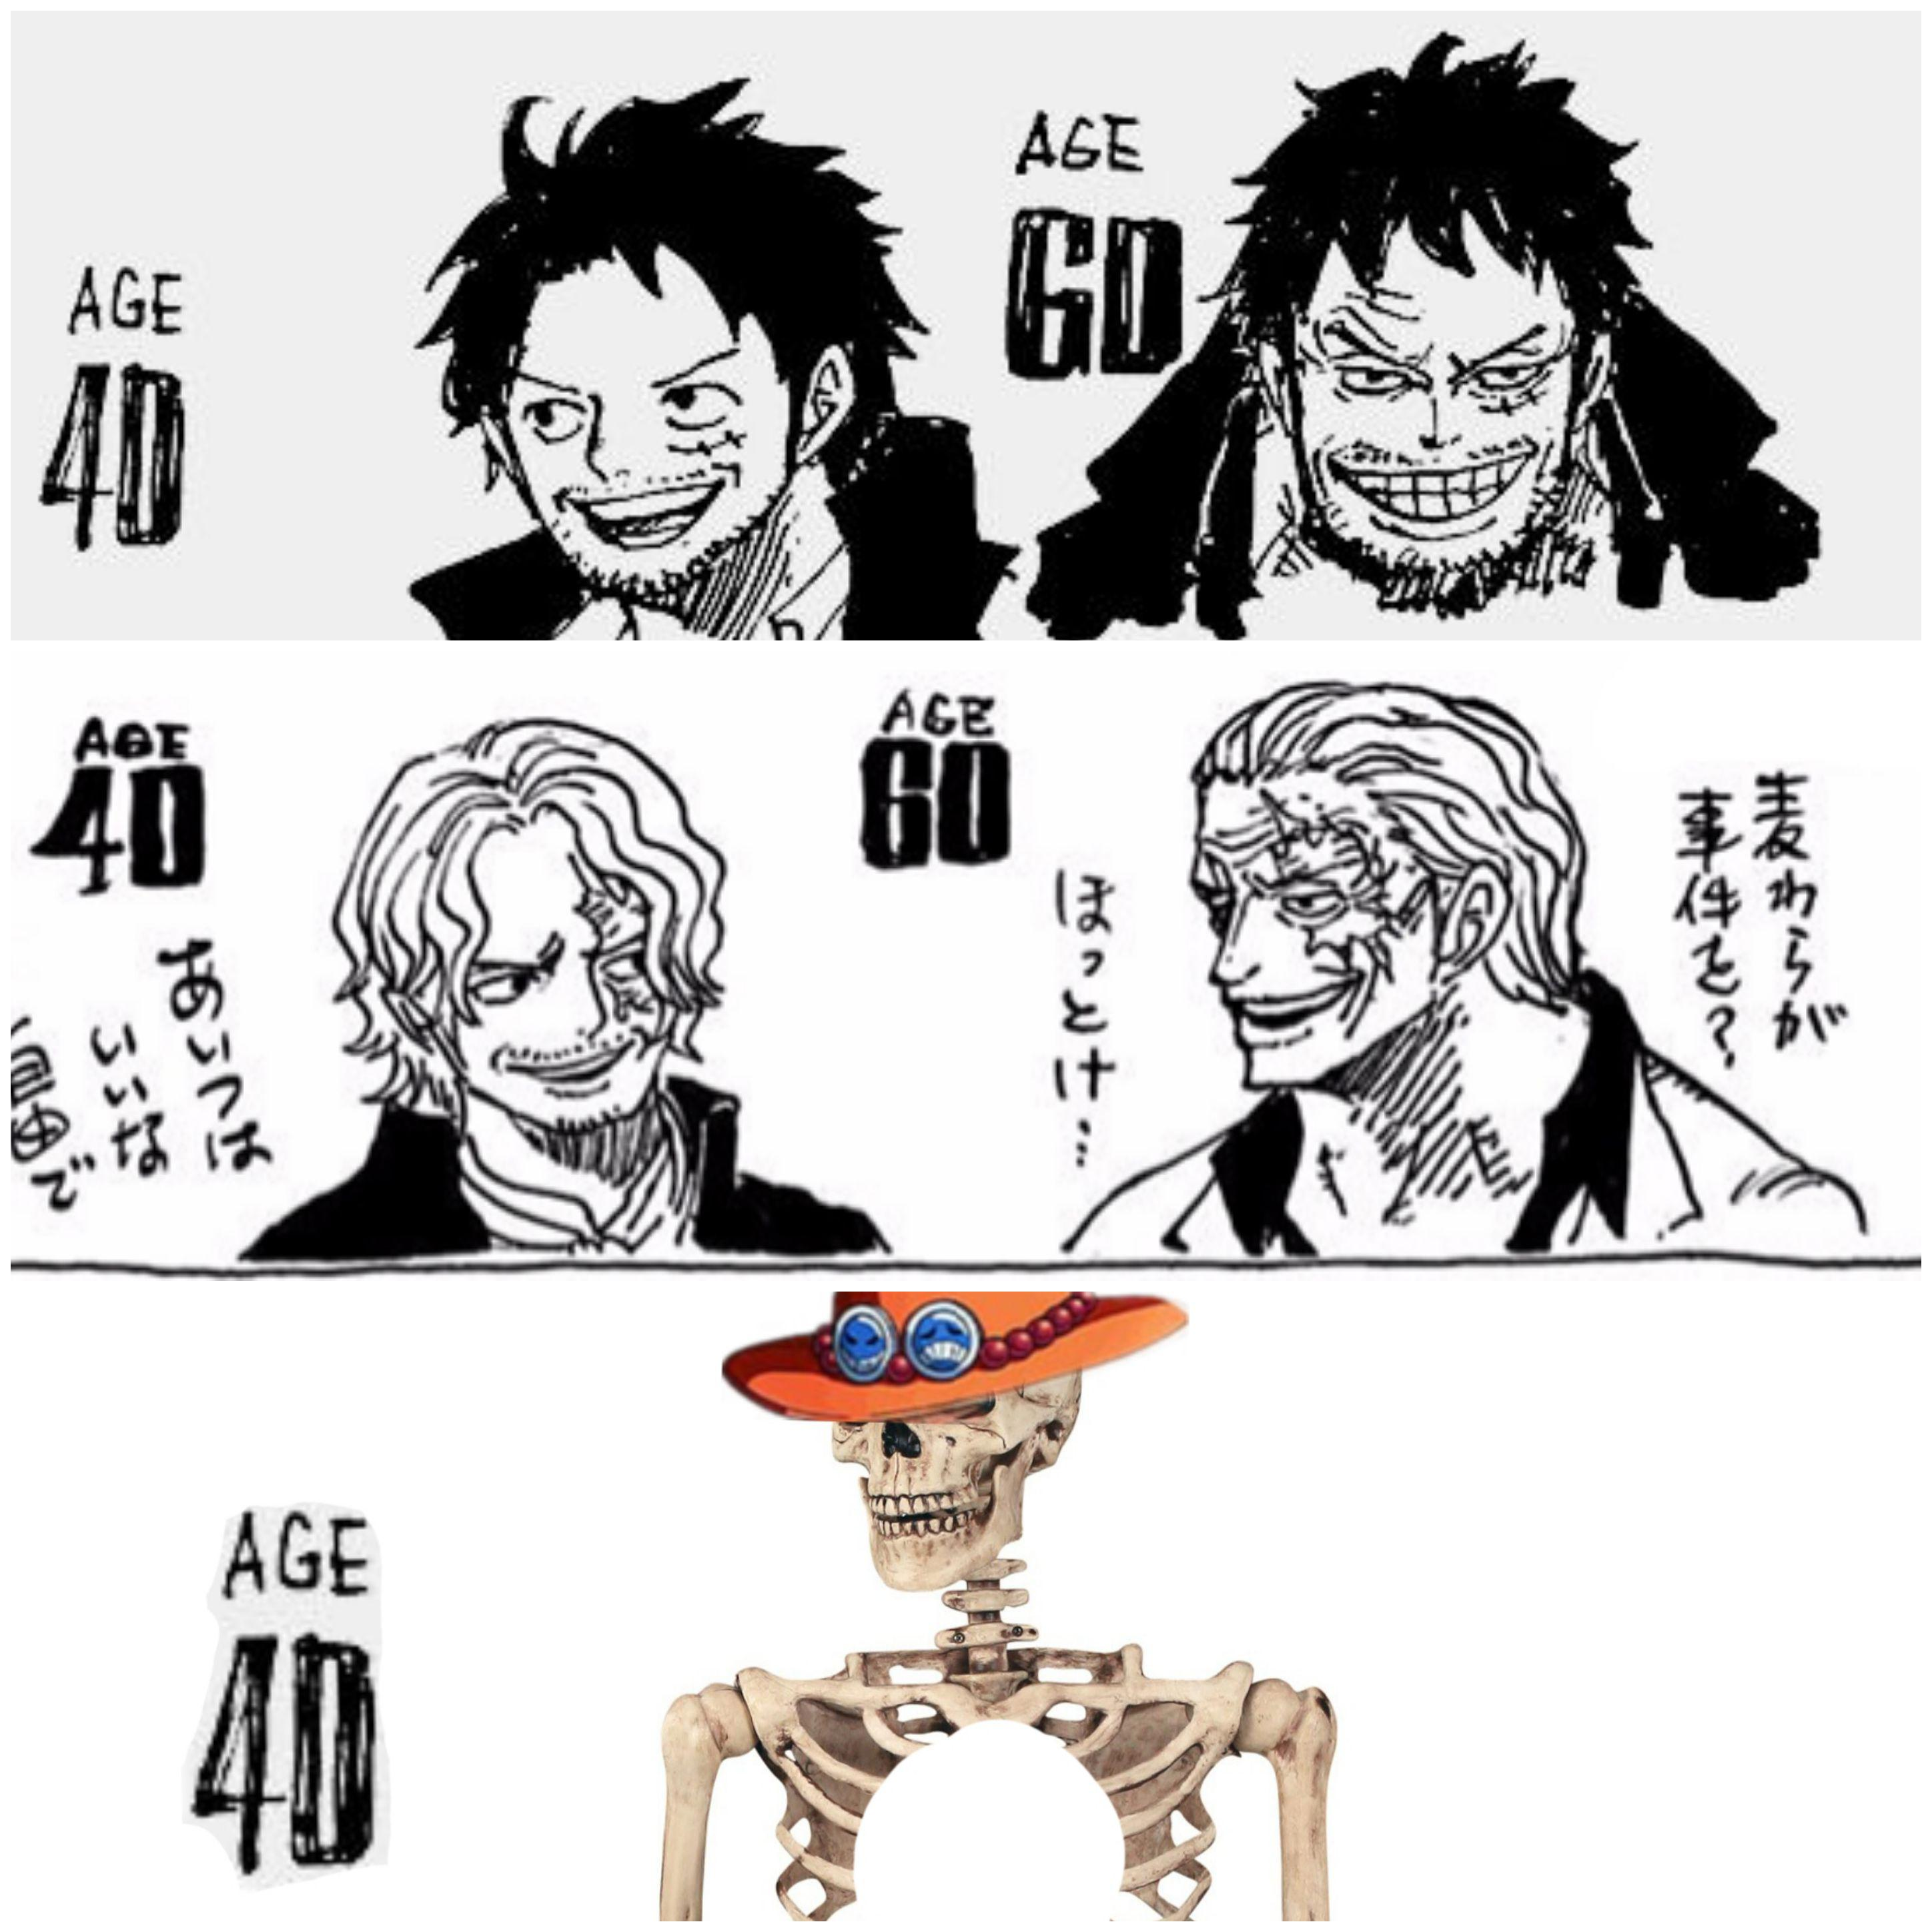 05/09/2021· many fans have drawn the luffy images in the older ages, such as 40 years or 60 years in future. Luffy Age 40 And 60 2896x2896 Wallpaper Teahub Io